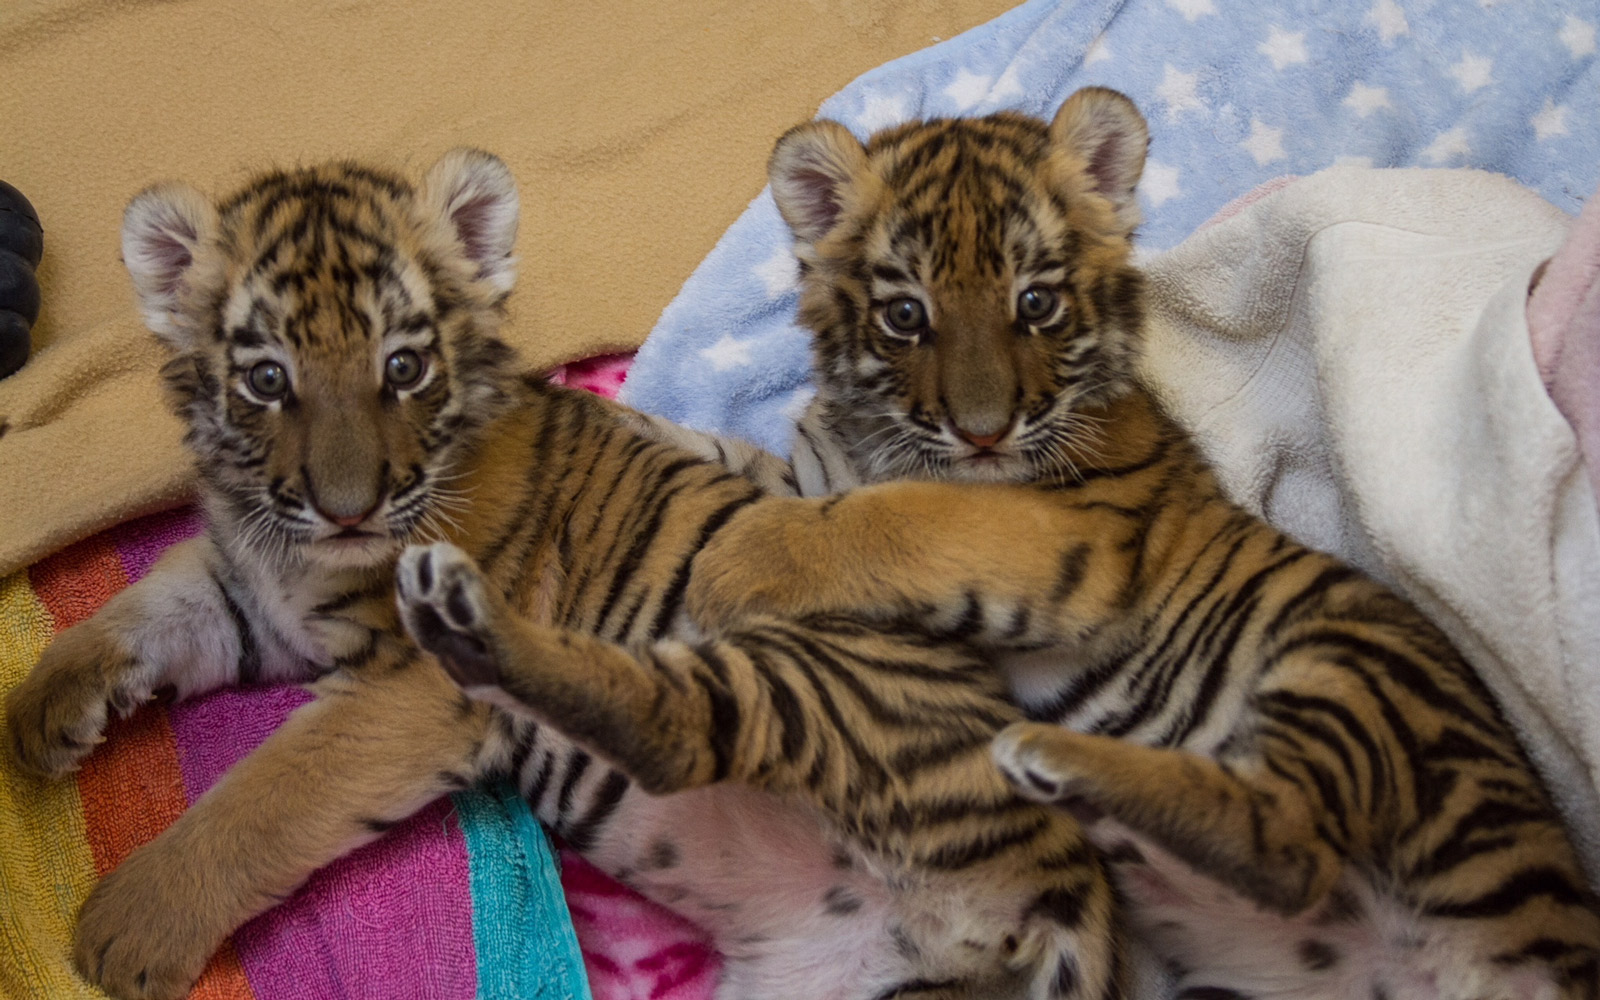 Connecticut Zoo Has 2 New Tiger Cubs, and You Can Watch Their Webcam Live